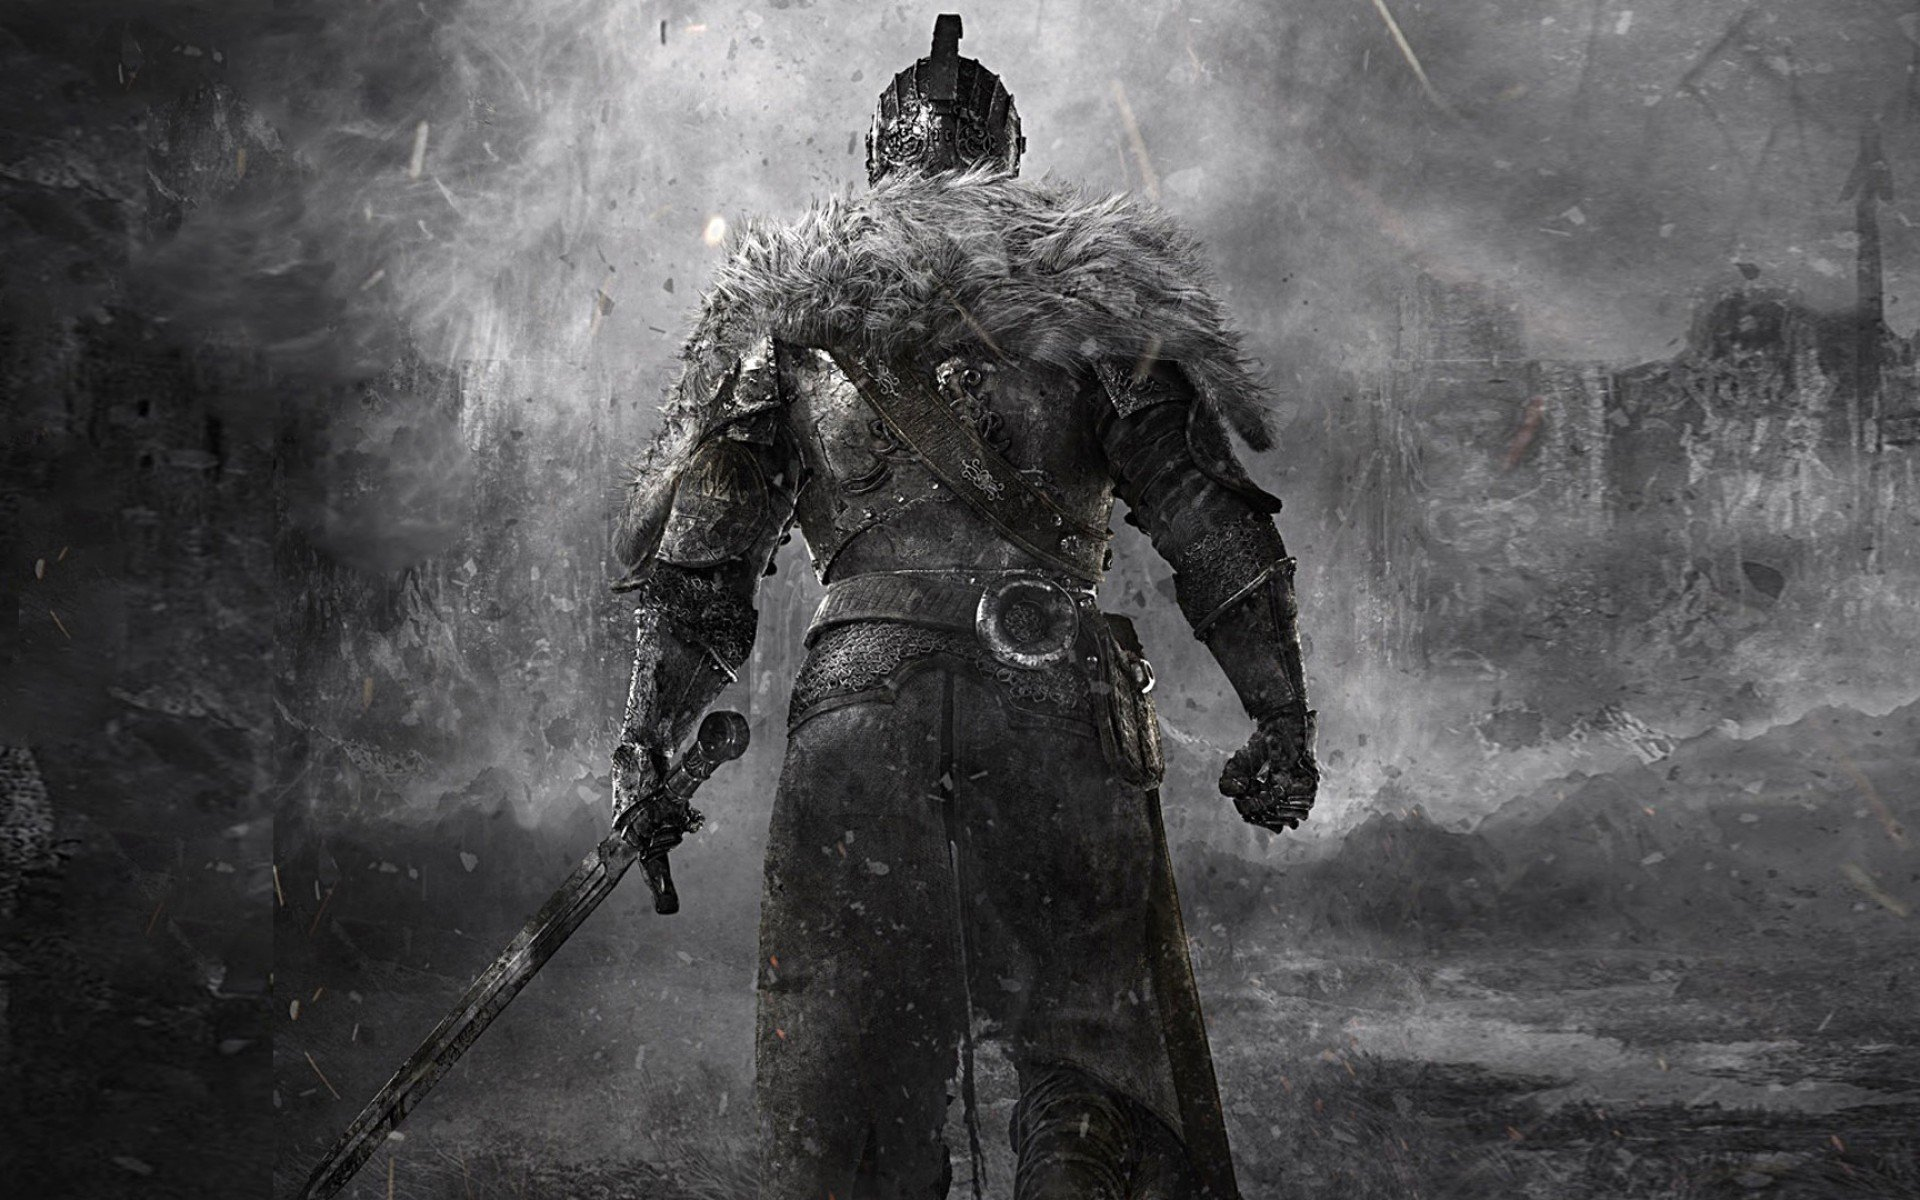 Knight Medieval Sword Dark Souls fantasy wallpaper 1920x1200 80533 1920x1200